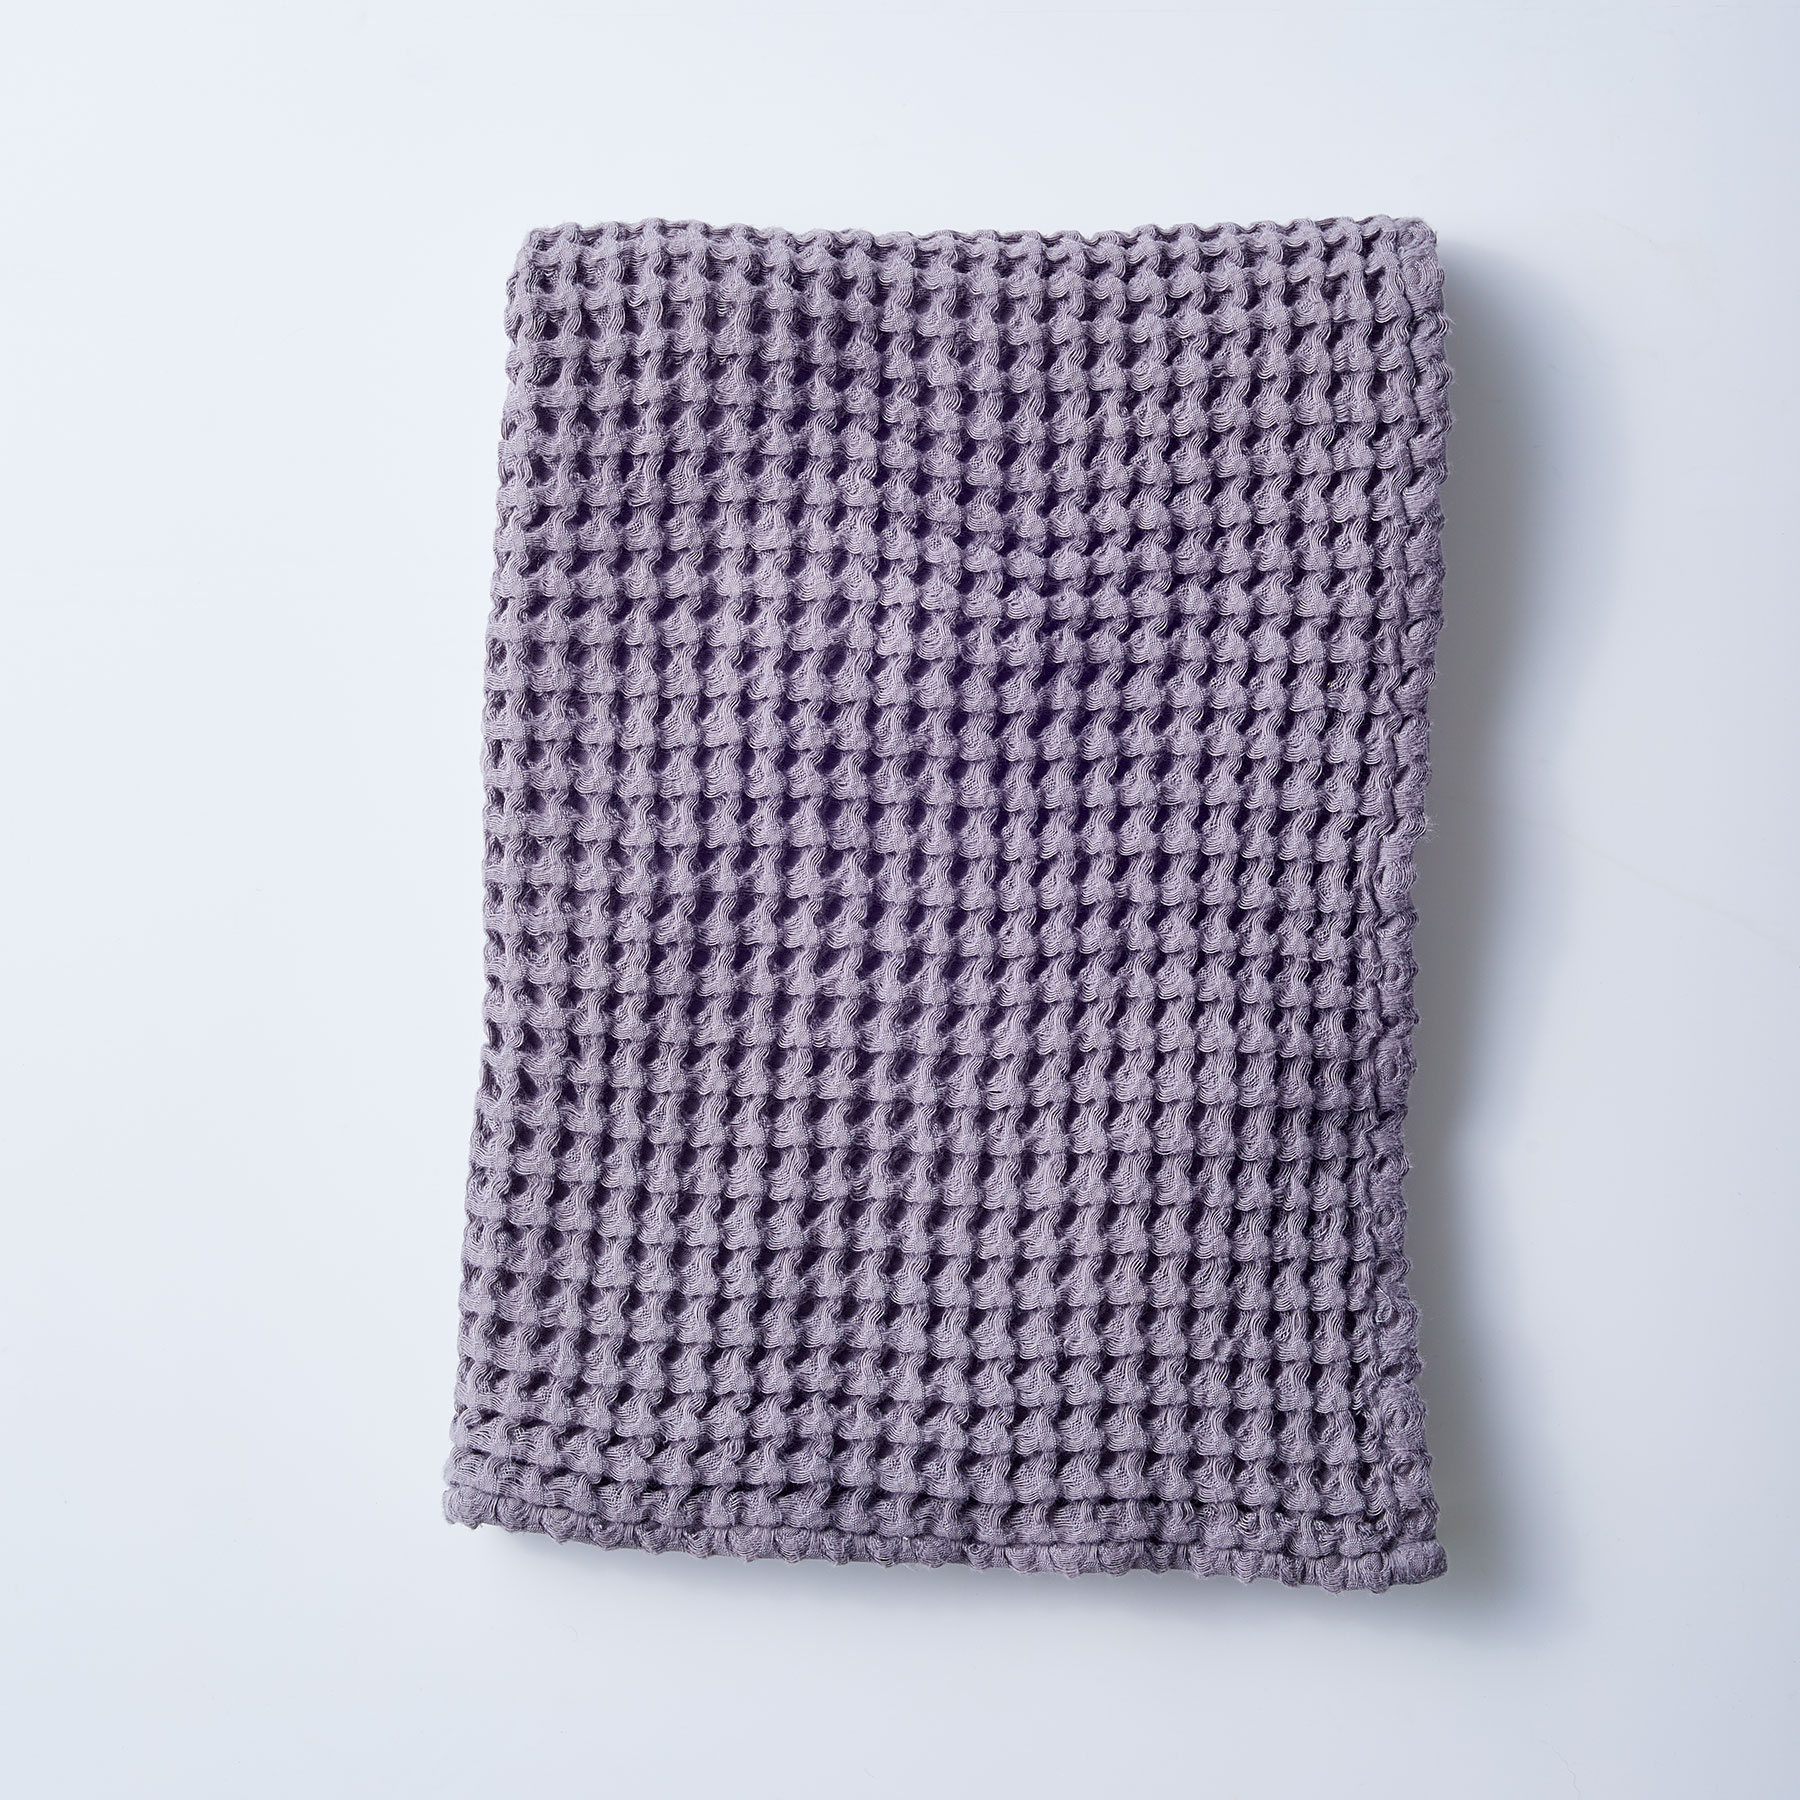 How to Pick the Best Bath Towels: Waffle Weave